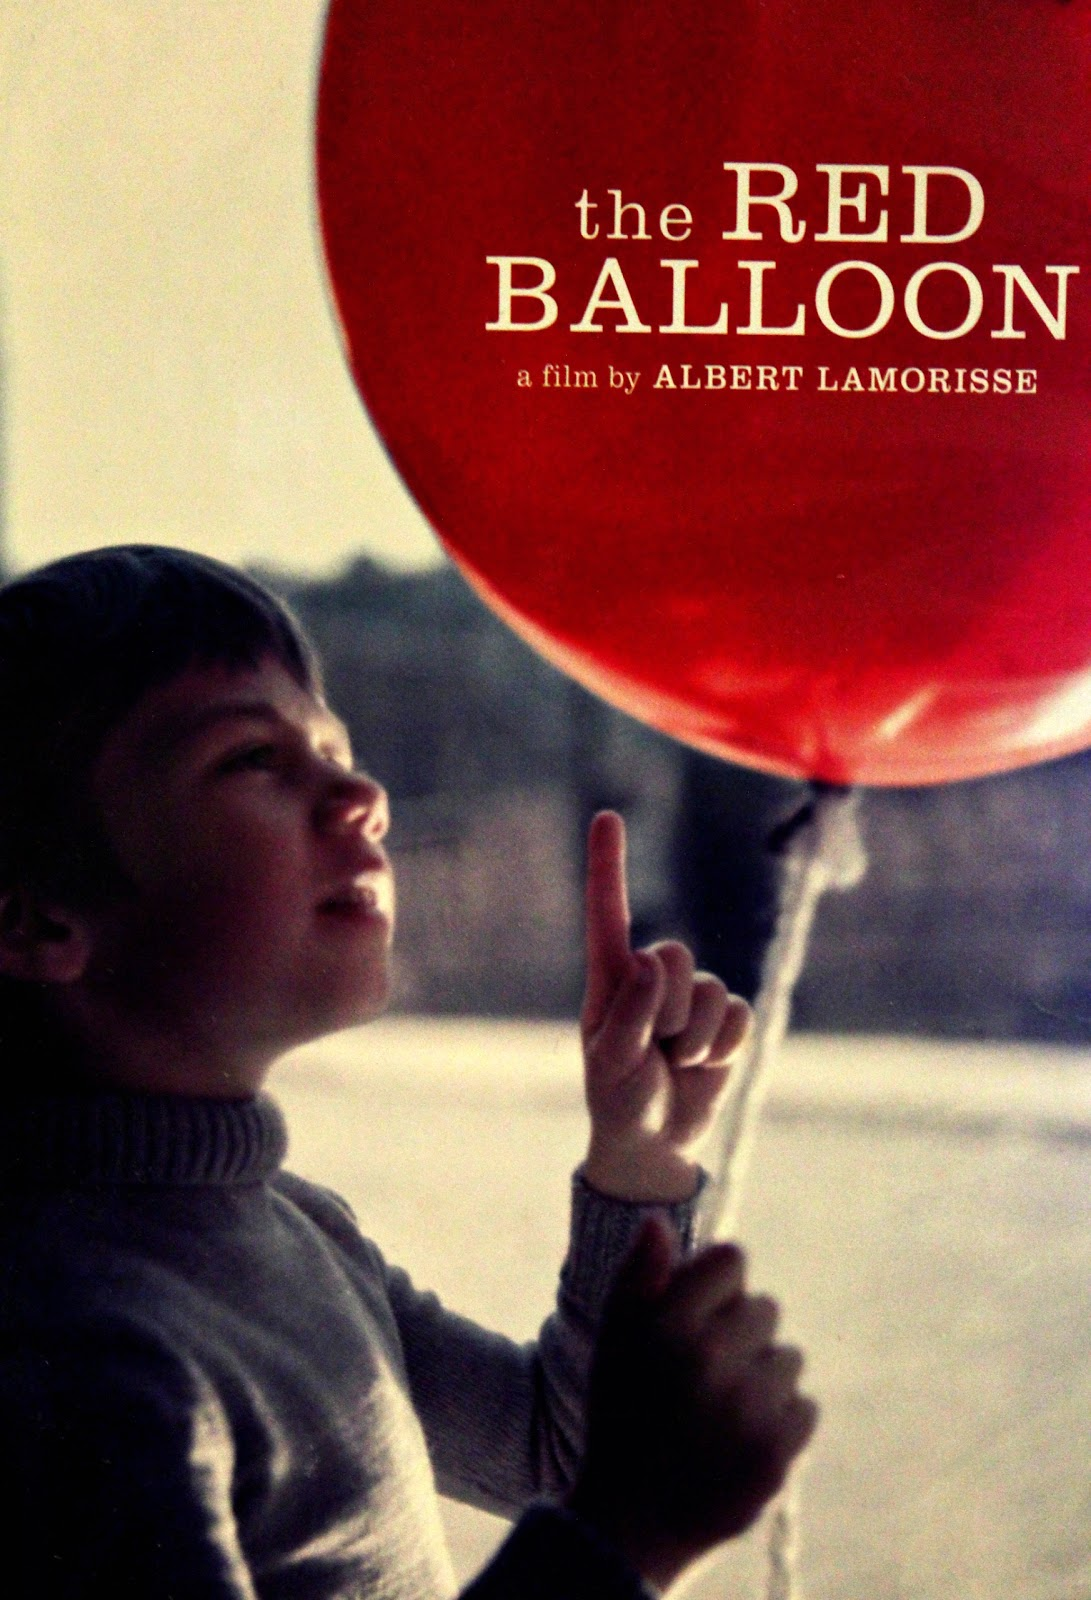 the red balloon movie analysis critique Related post of the red balloon movie analysis essay includes hara kiri mort d un samurai critique essay what is the original meaning of the word essay.